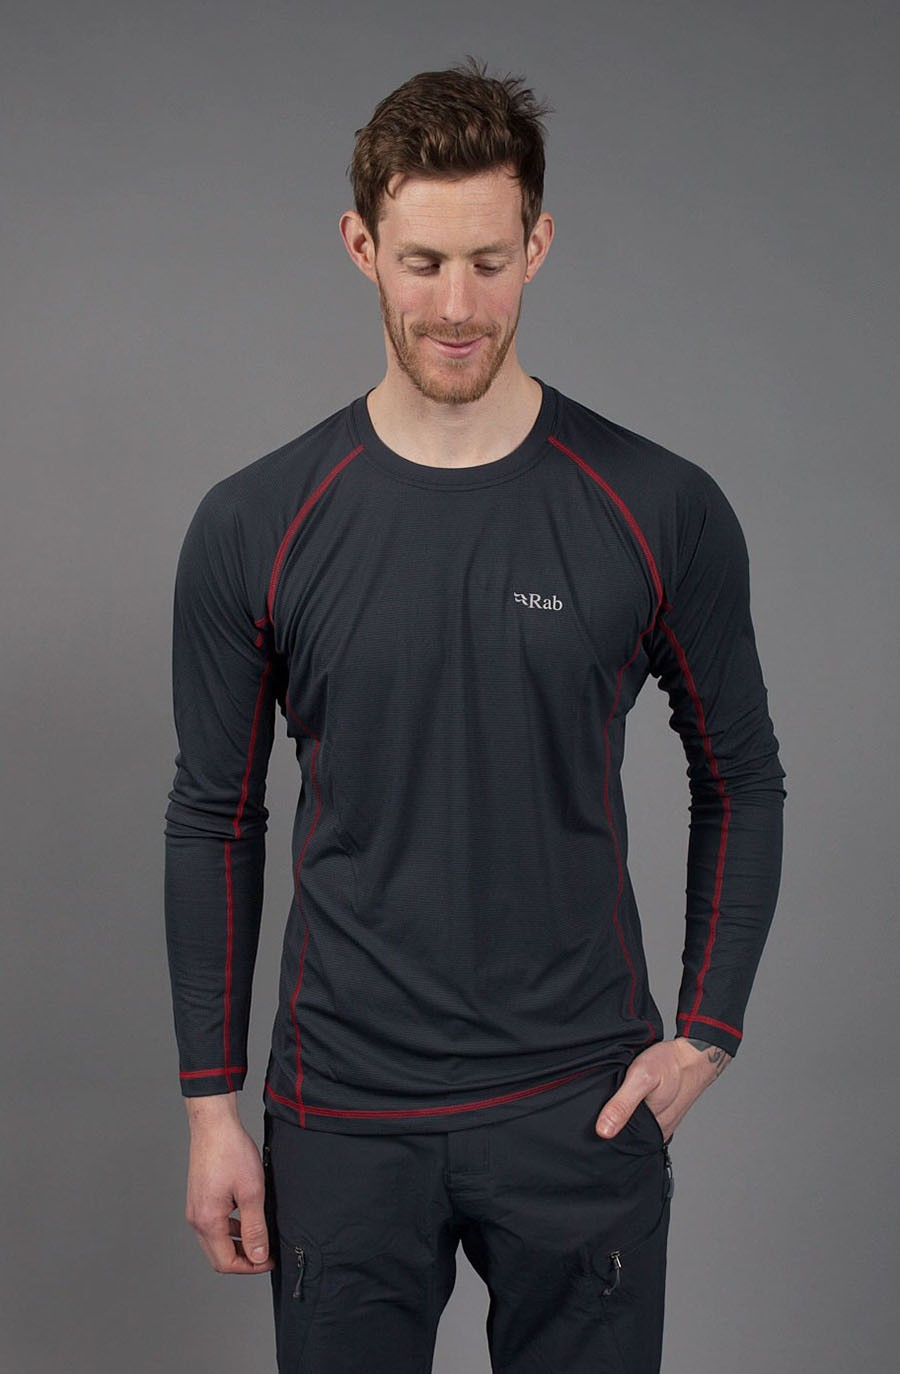 RAB - INTERVAL LS TEE - MEN